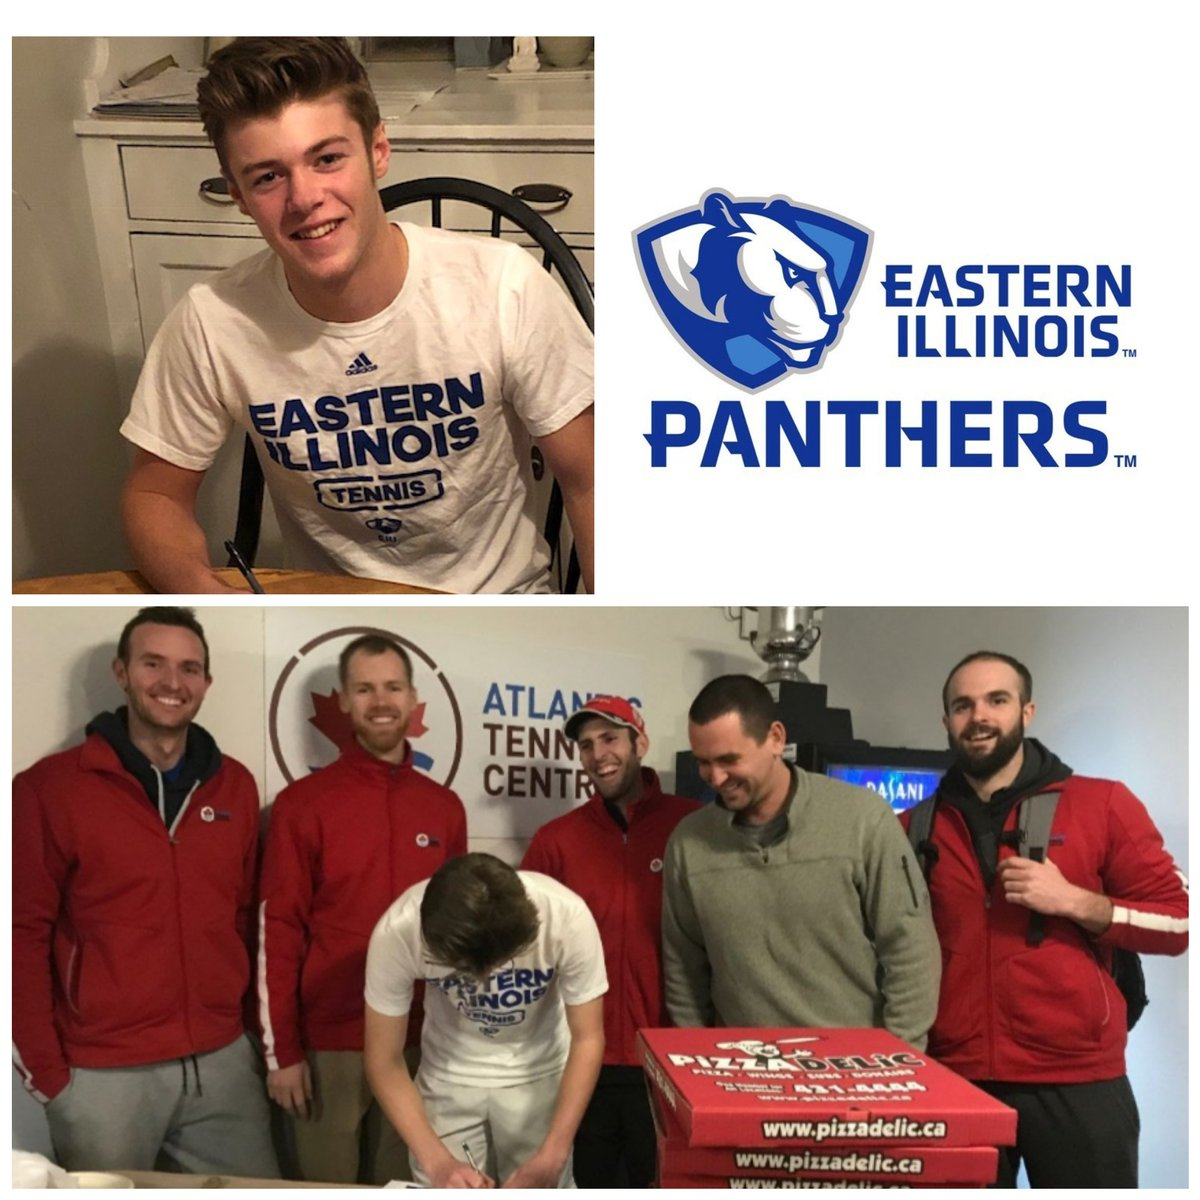 dreams can come true! off to Illinois in August @EIUTennis super proud of Thomas' commitment- not easy route from Atl Cnd - no shortcuts and alot hard work along the way...   thankyou coaches🎾🎾♥️  @AtlanticTennis #ncaa #div1